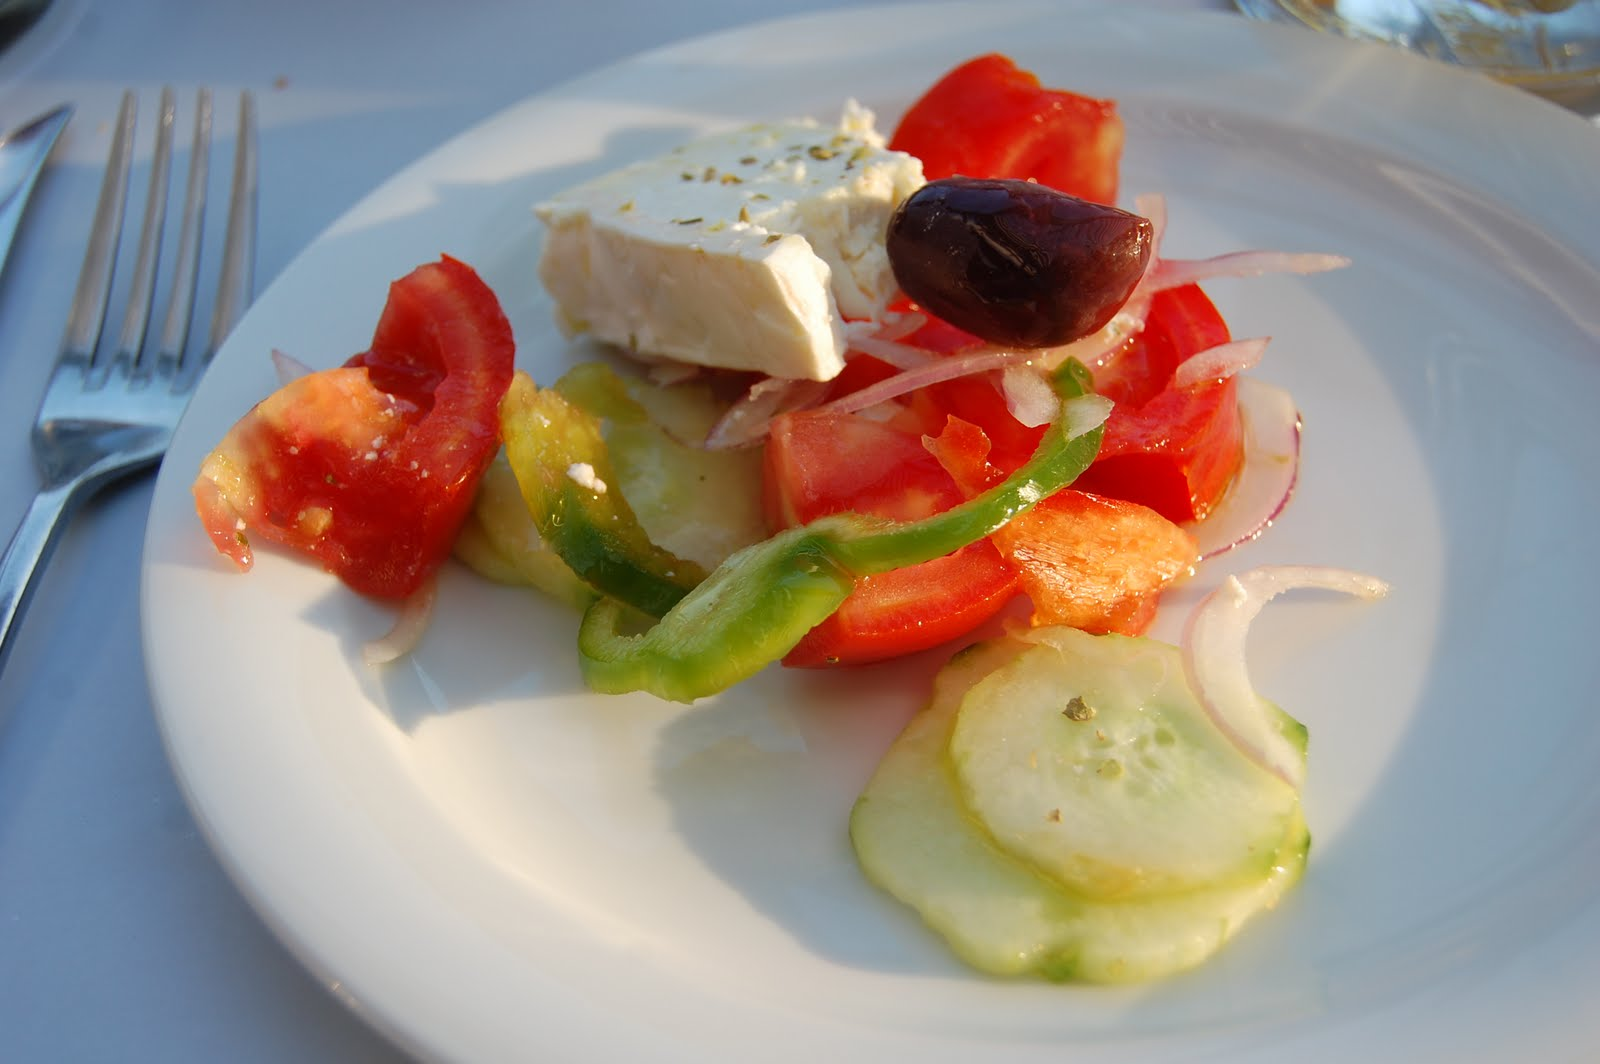 Fast food in greece the anthropology of christina for Anthropology of food and cuisine